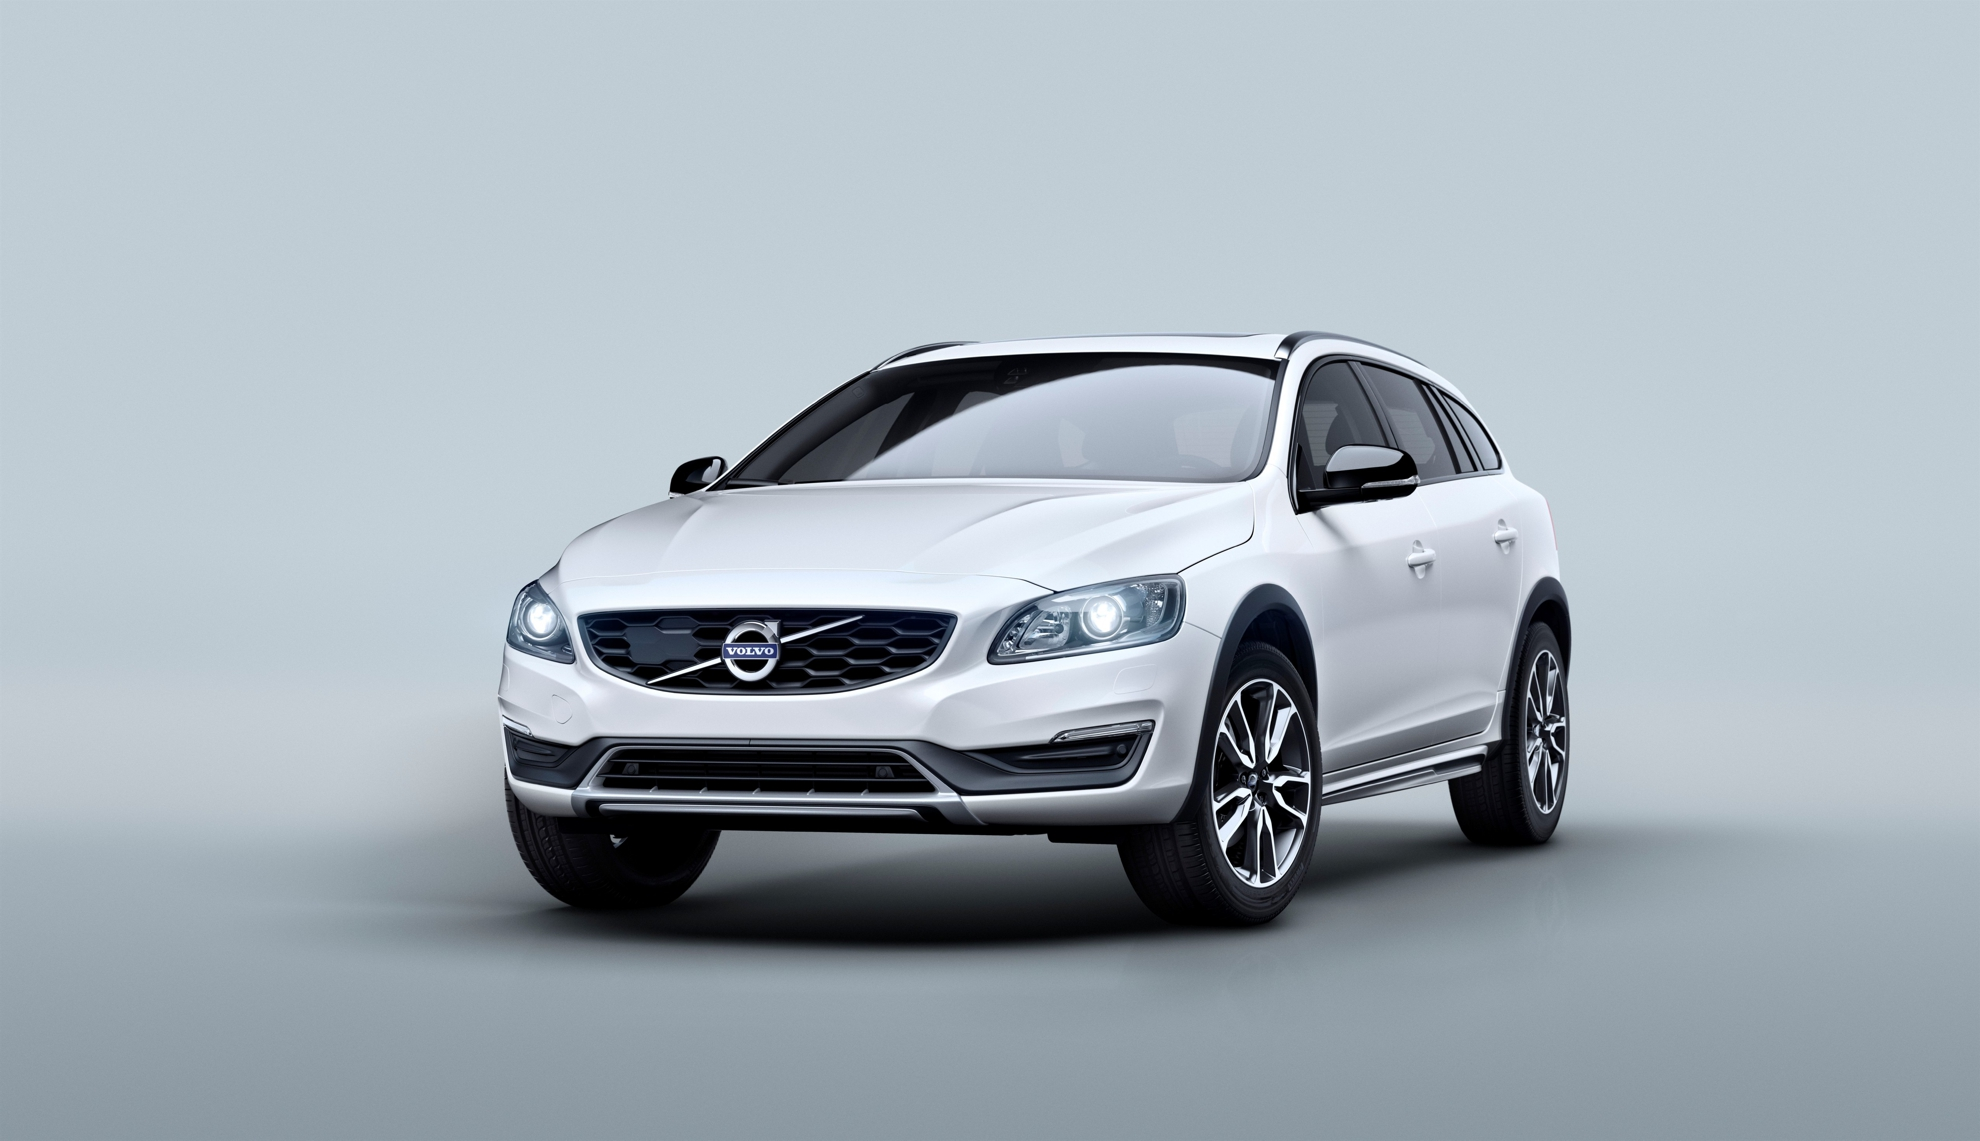 v60-cross-country